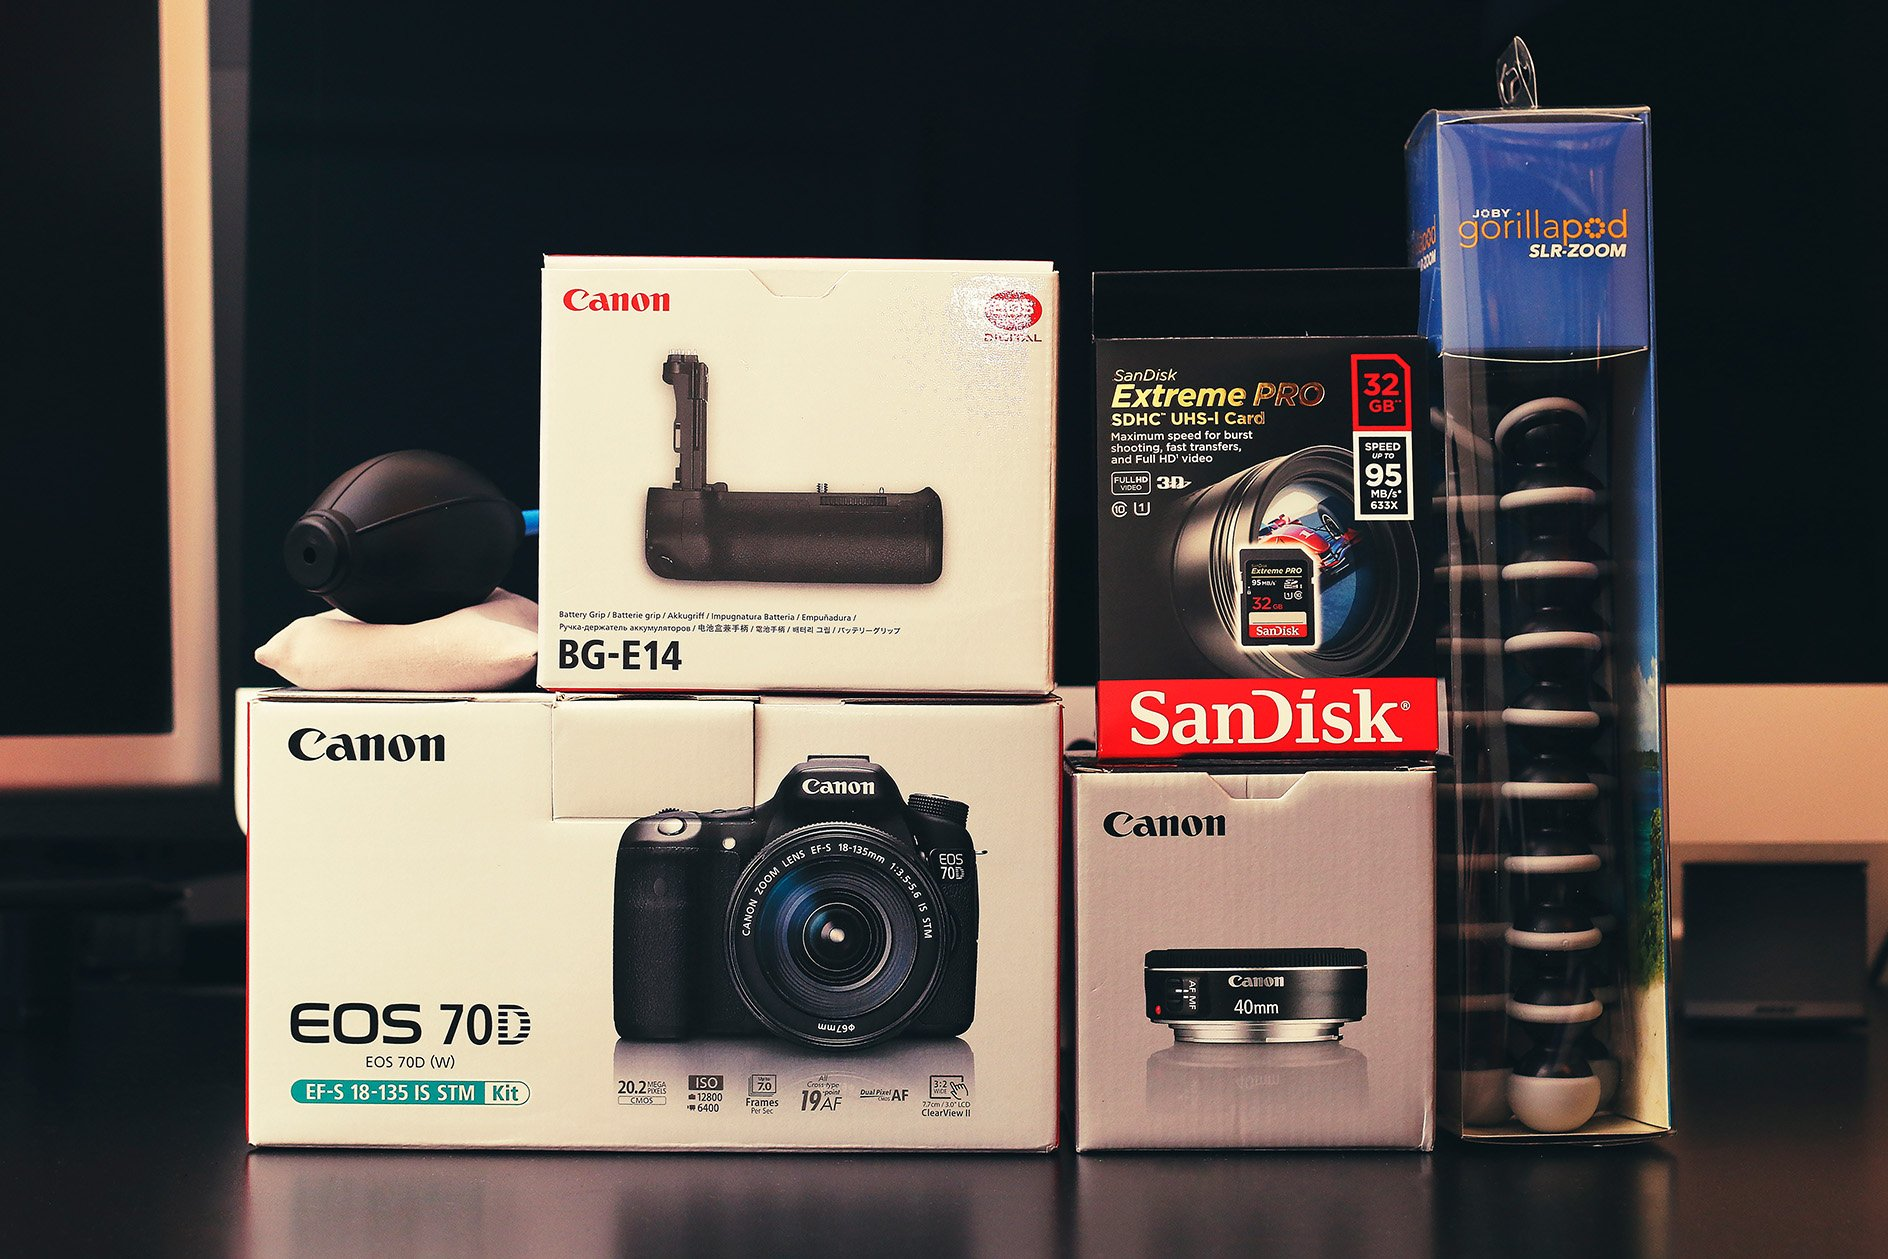 Canon EOS 70D and Other Equipment